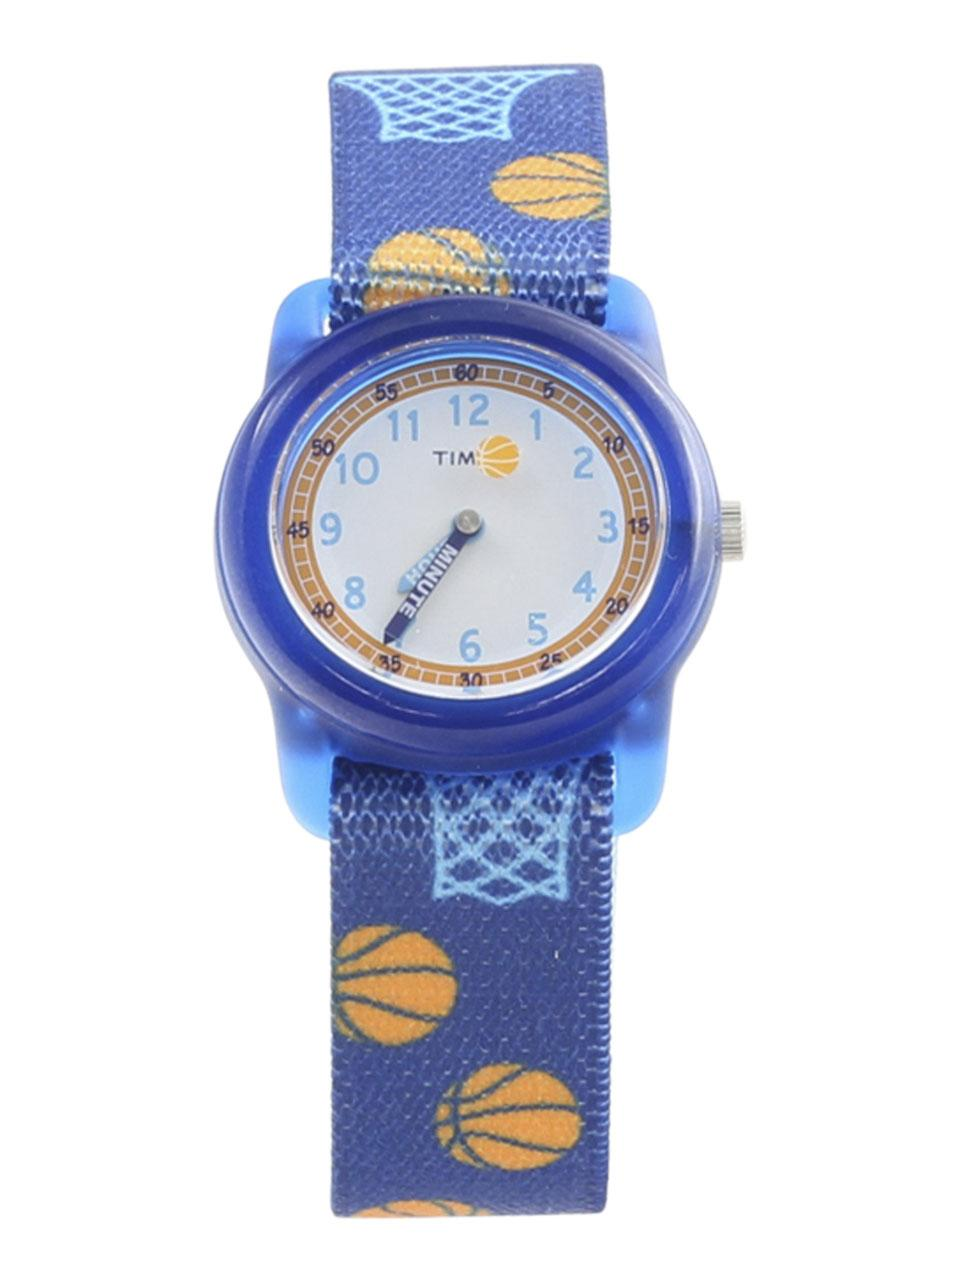 Image of Timex Boys s TW7C16800 Time Machines Blue Basketball Analog Watch